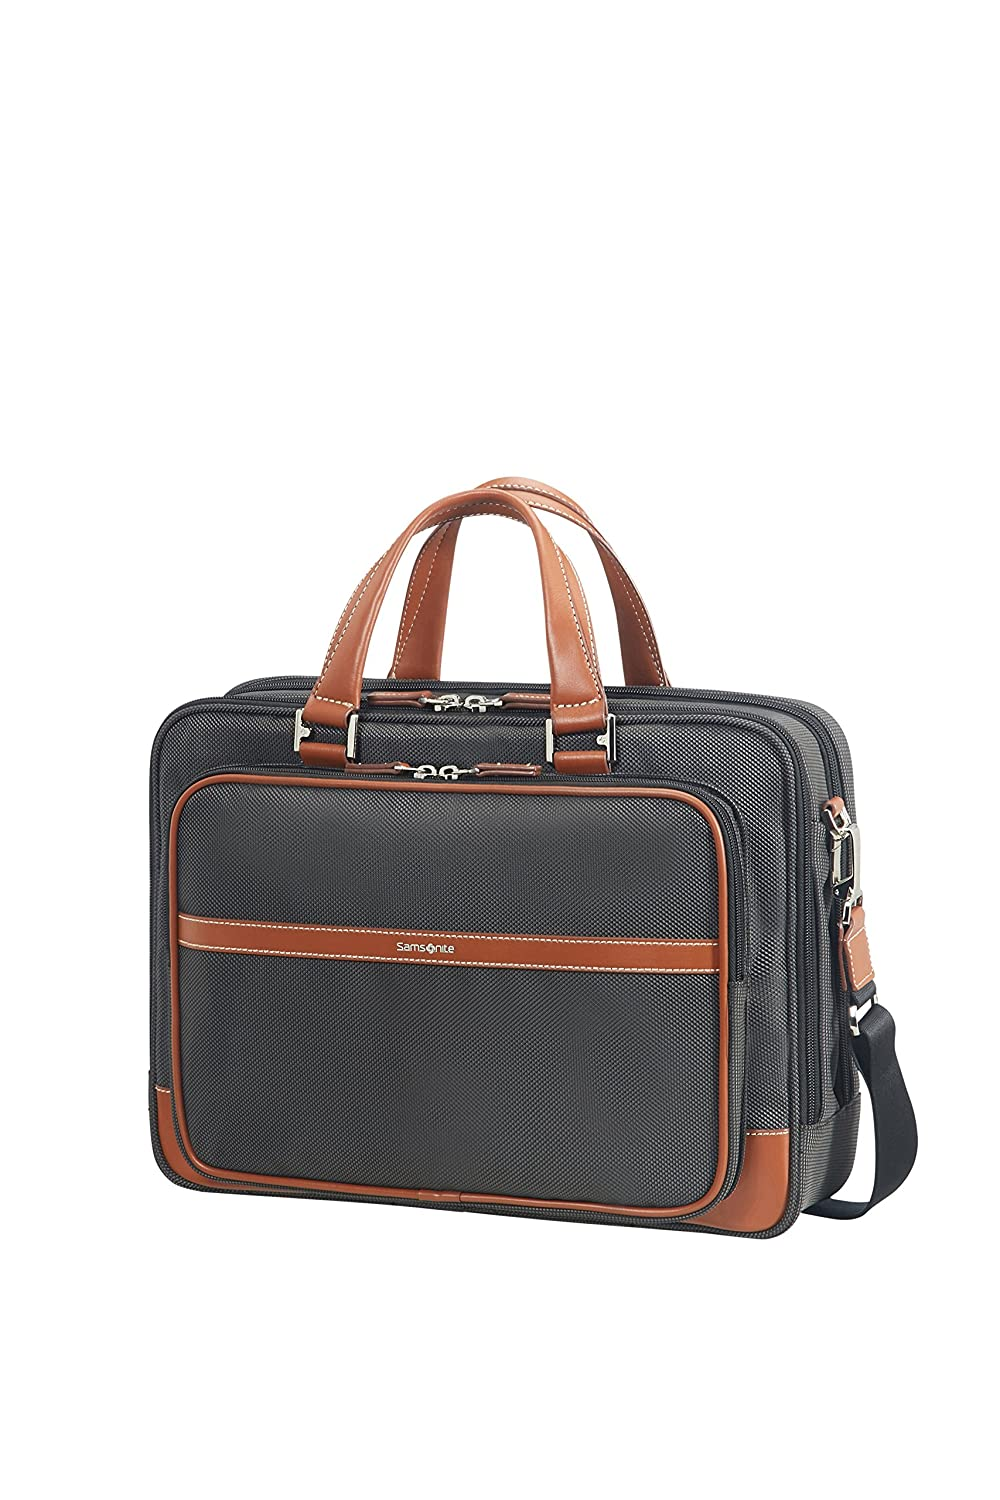 SAMSONITE Fairbrook - Bailhandle 15.6, 42 cm, 18.5 liters, Bronze/Schwarz 85430/1964